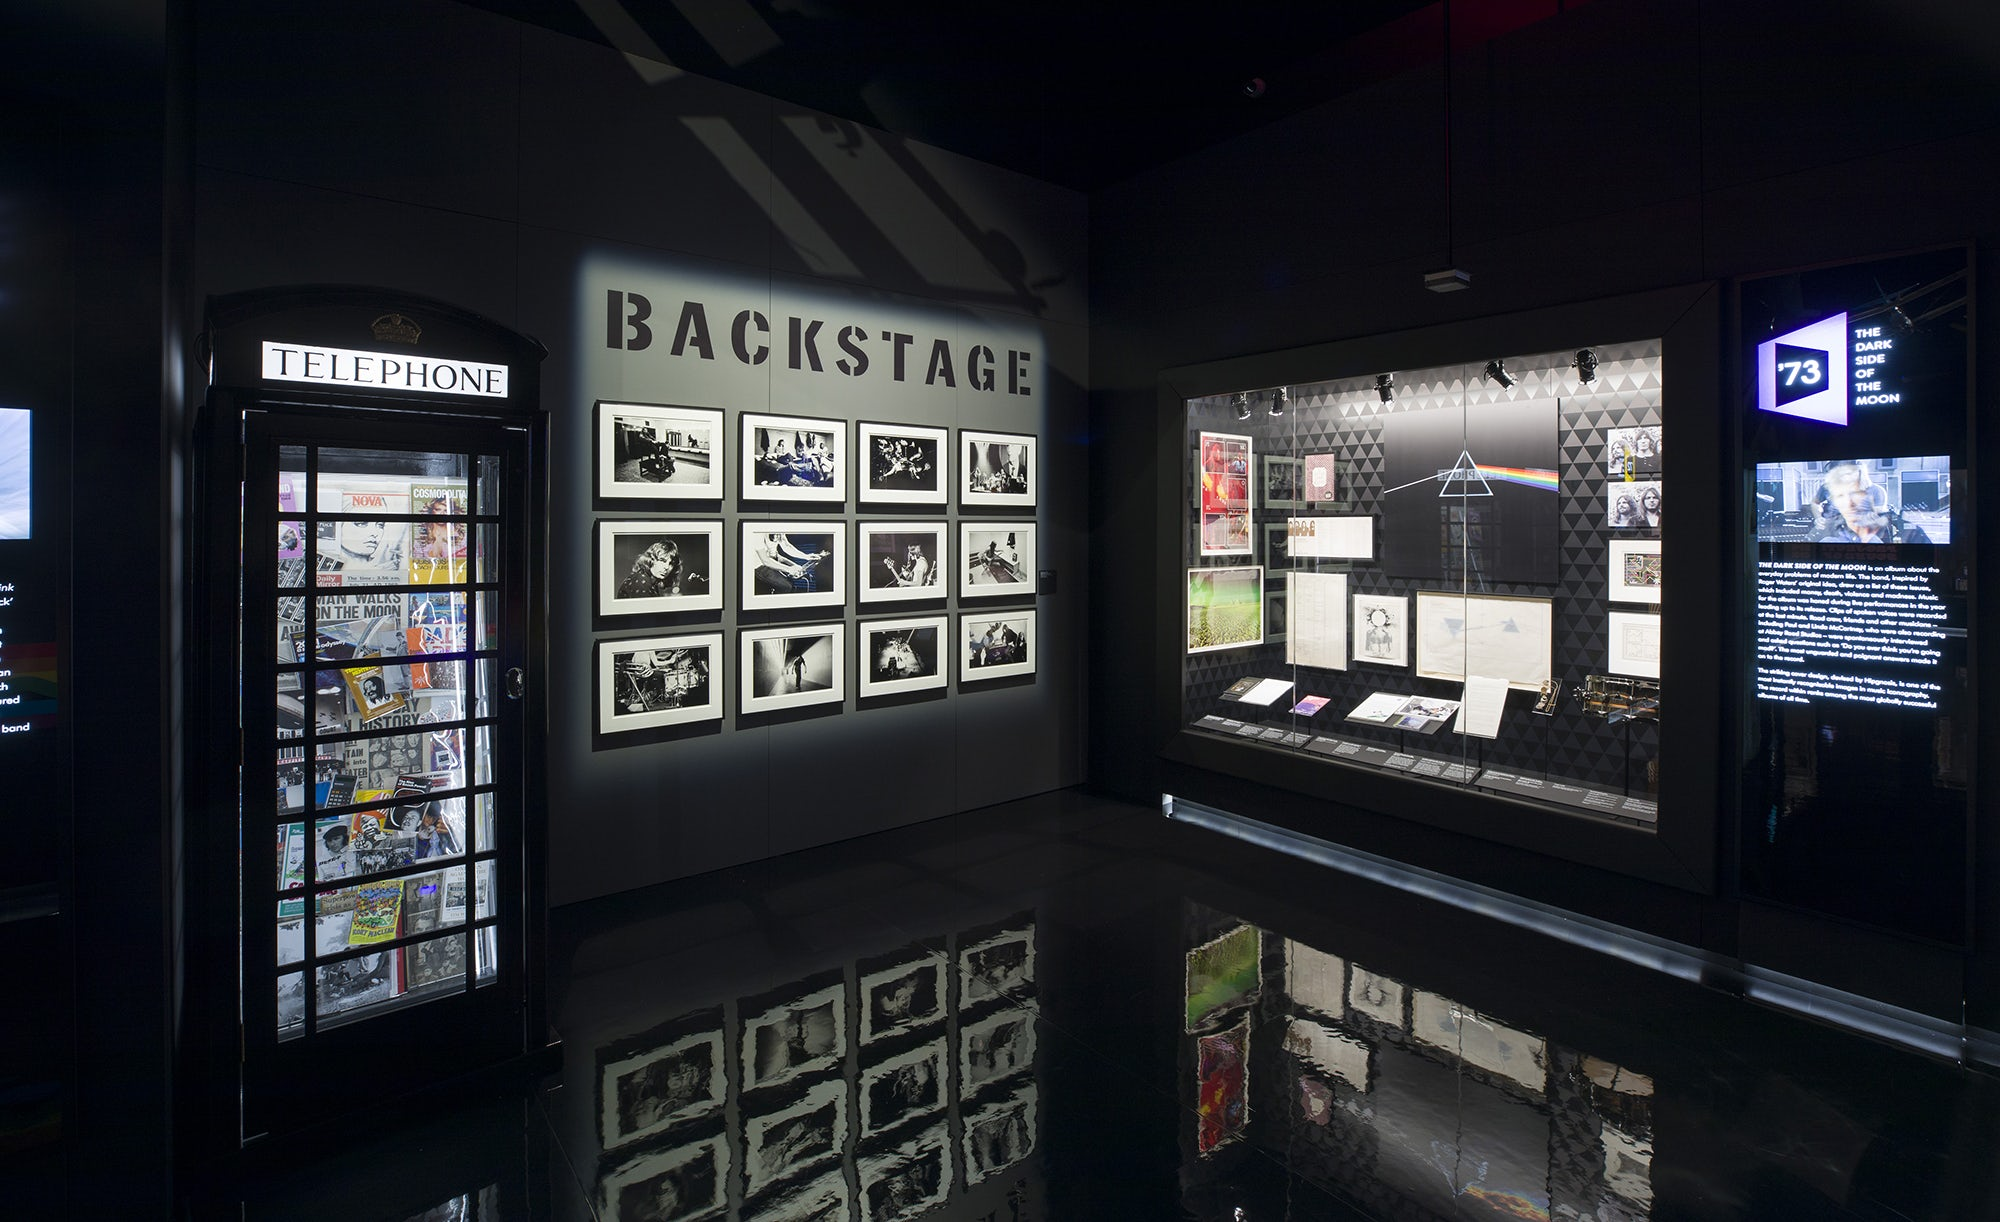 A section exploring the band's rise to fame ends with a look at the release of Dark Side of the Moon. The iconic artwork has also been used to create a holographic image in a separate room. Image courtesy of the V&A